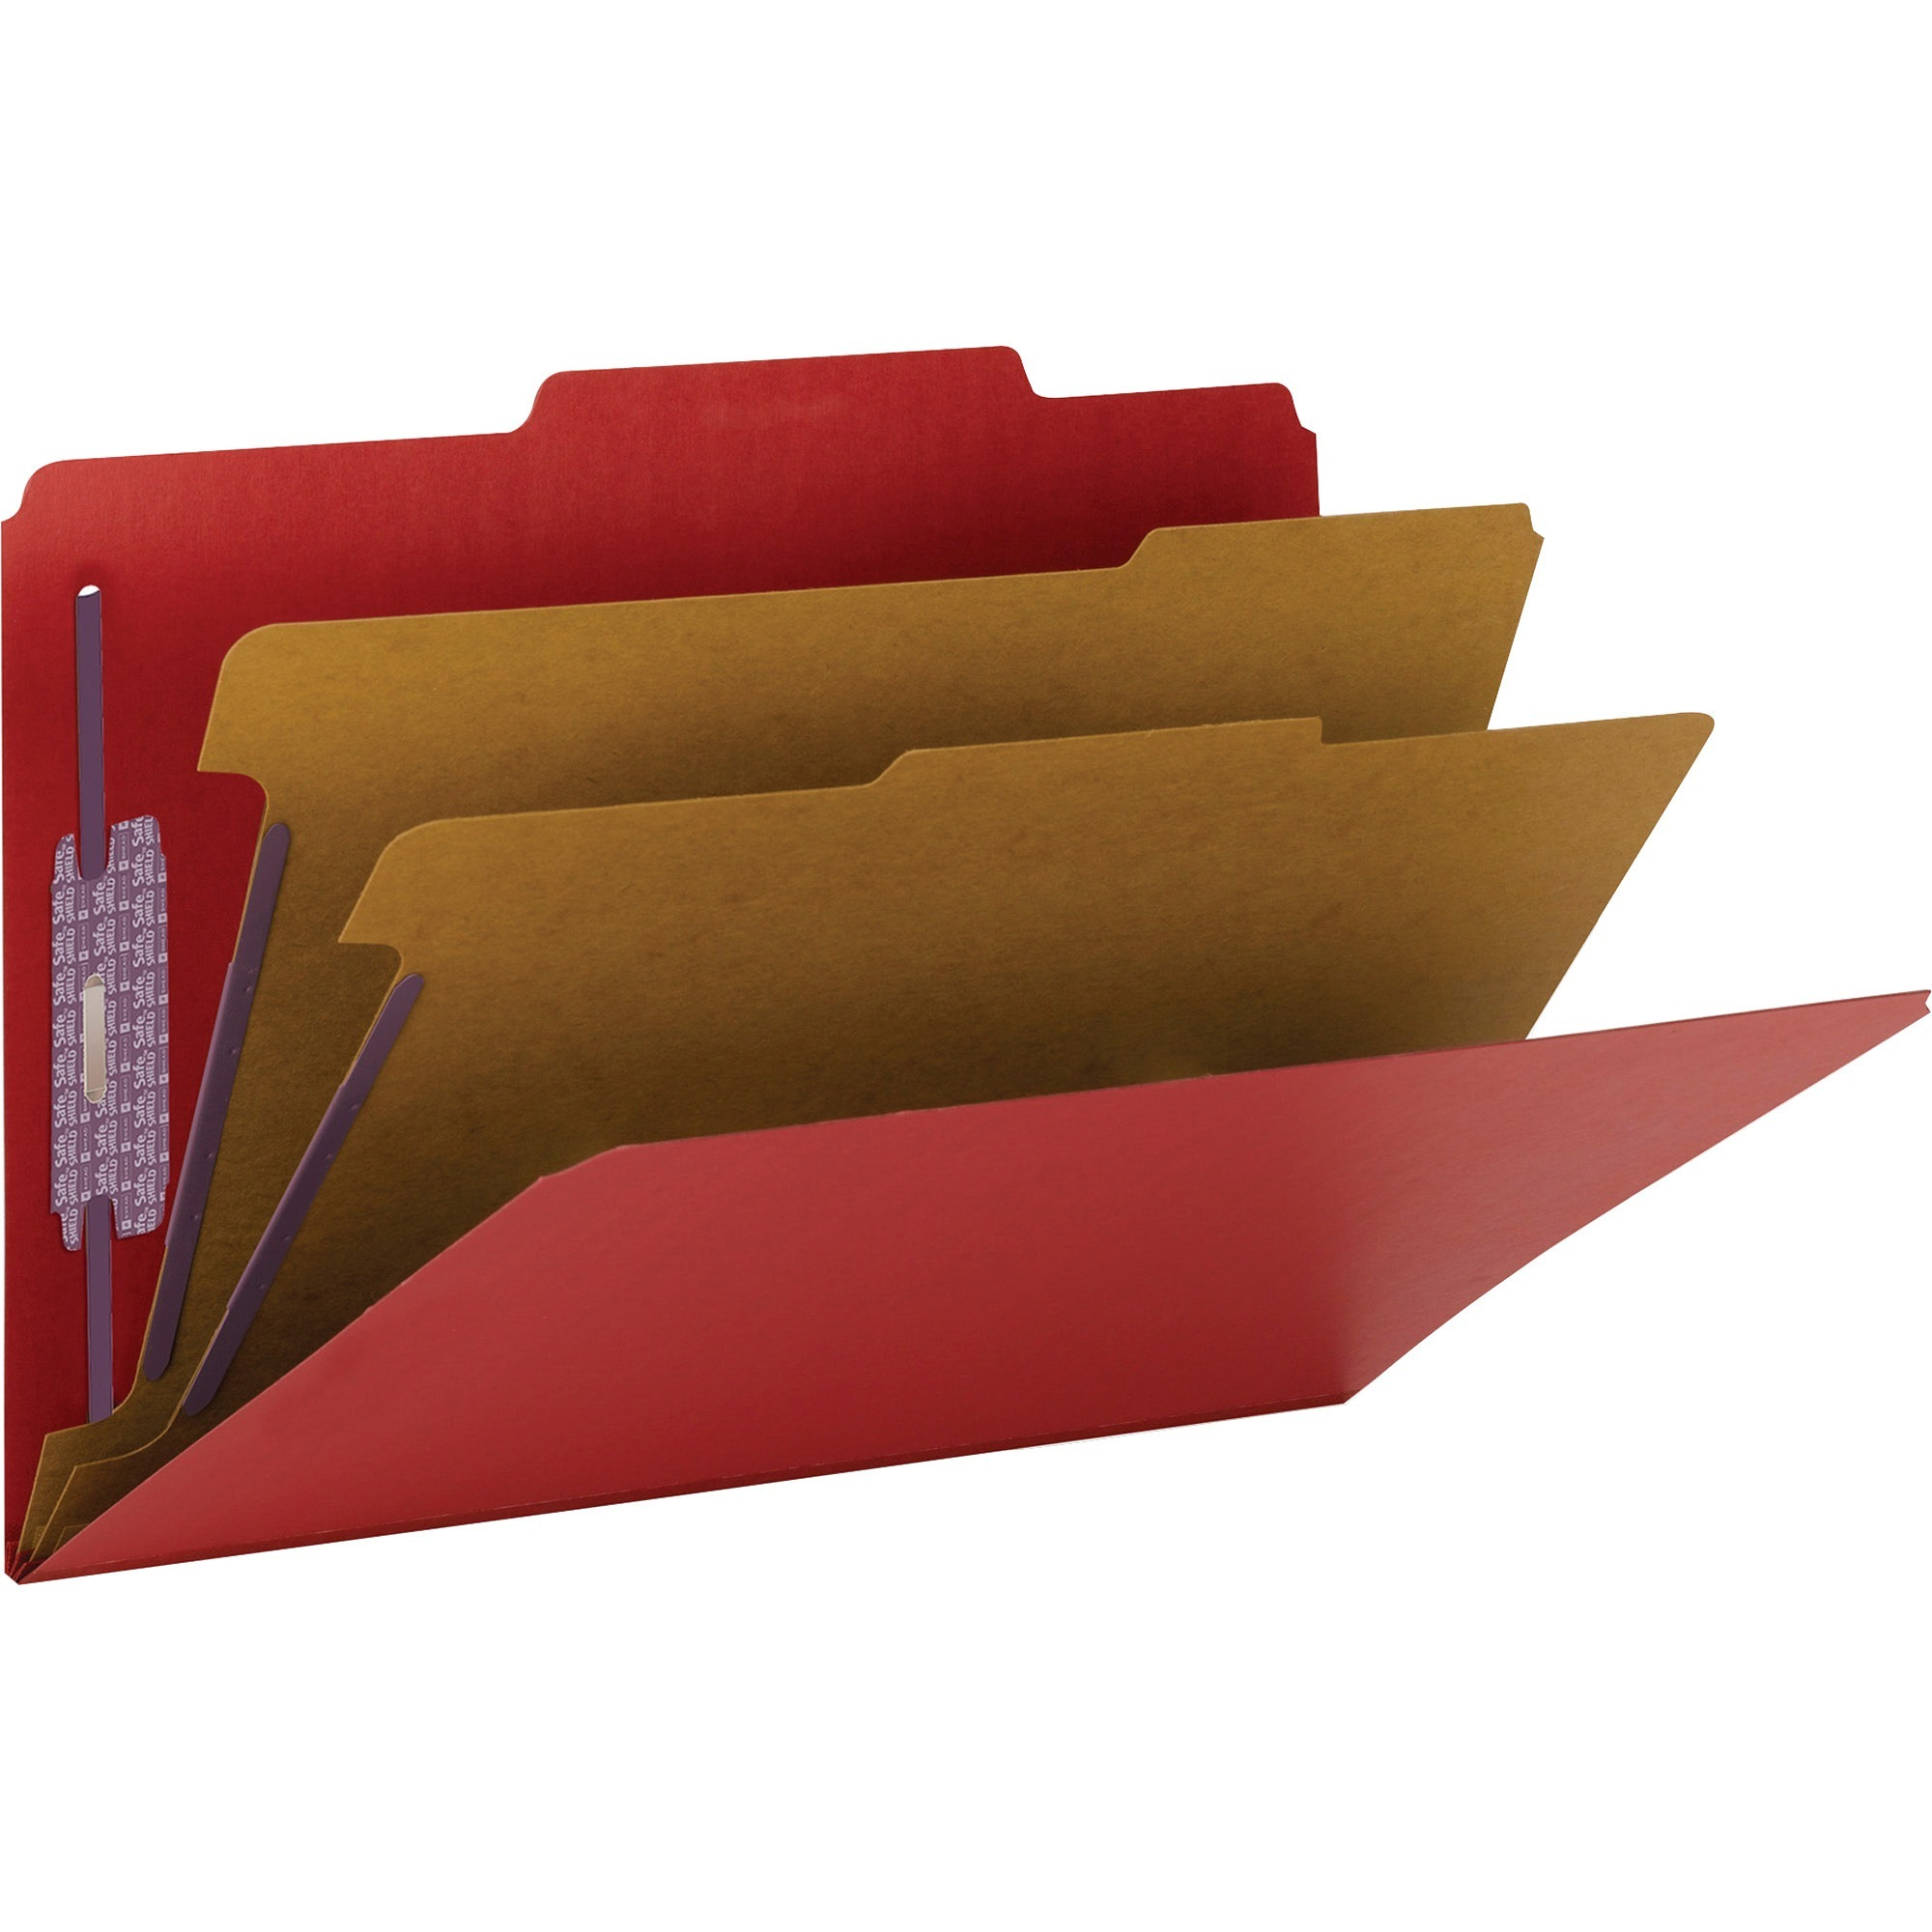 kamloops office systems    office supplies    filing supplies    classification folders